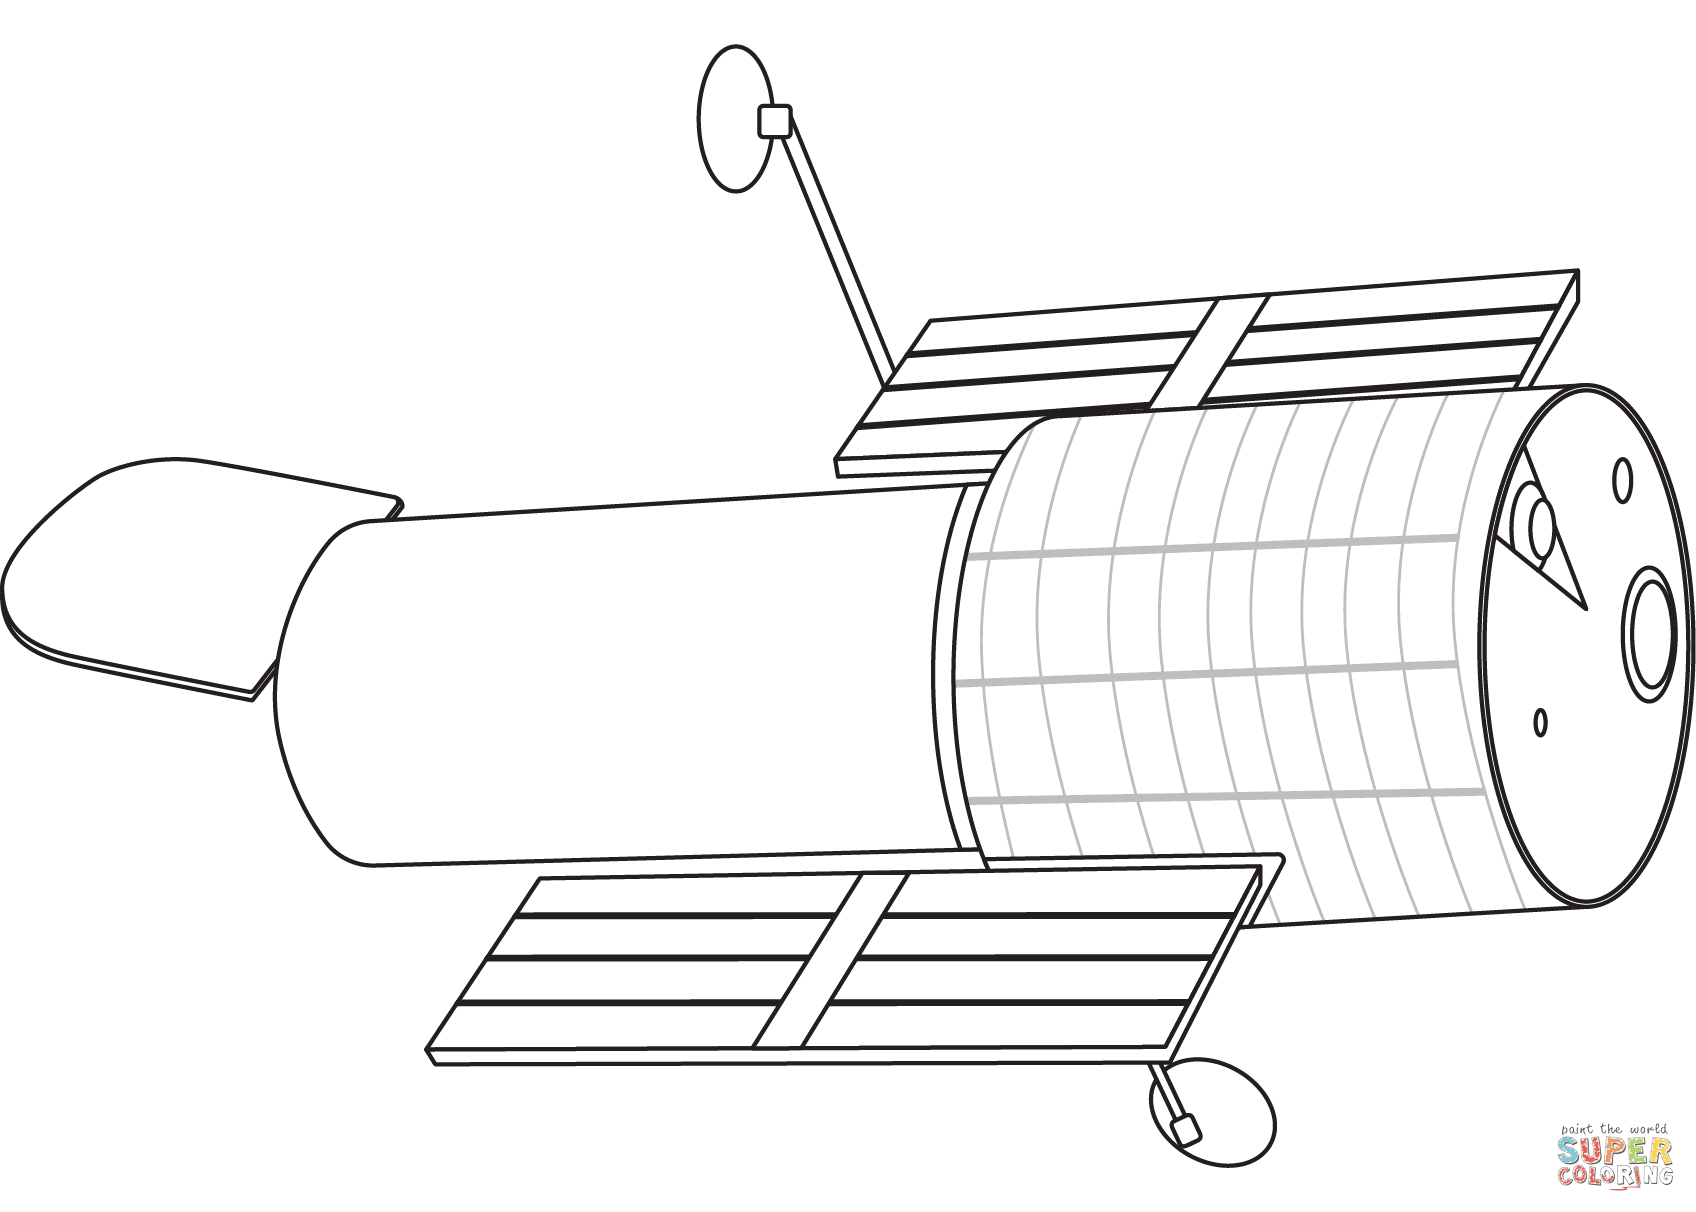 Download Hubble Telescope coloring page | Free Printable Coloring Pages